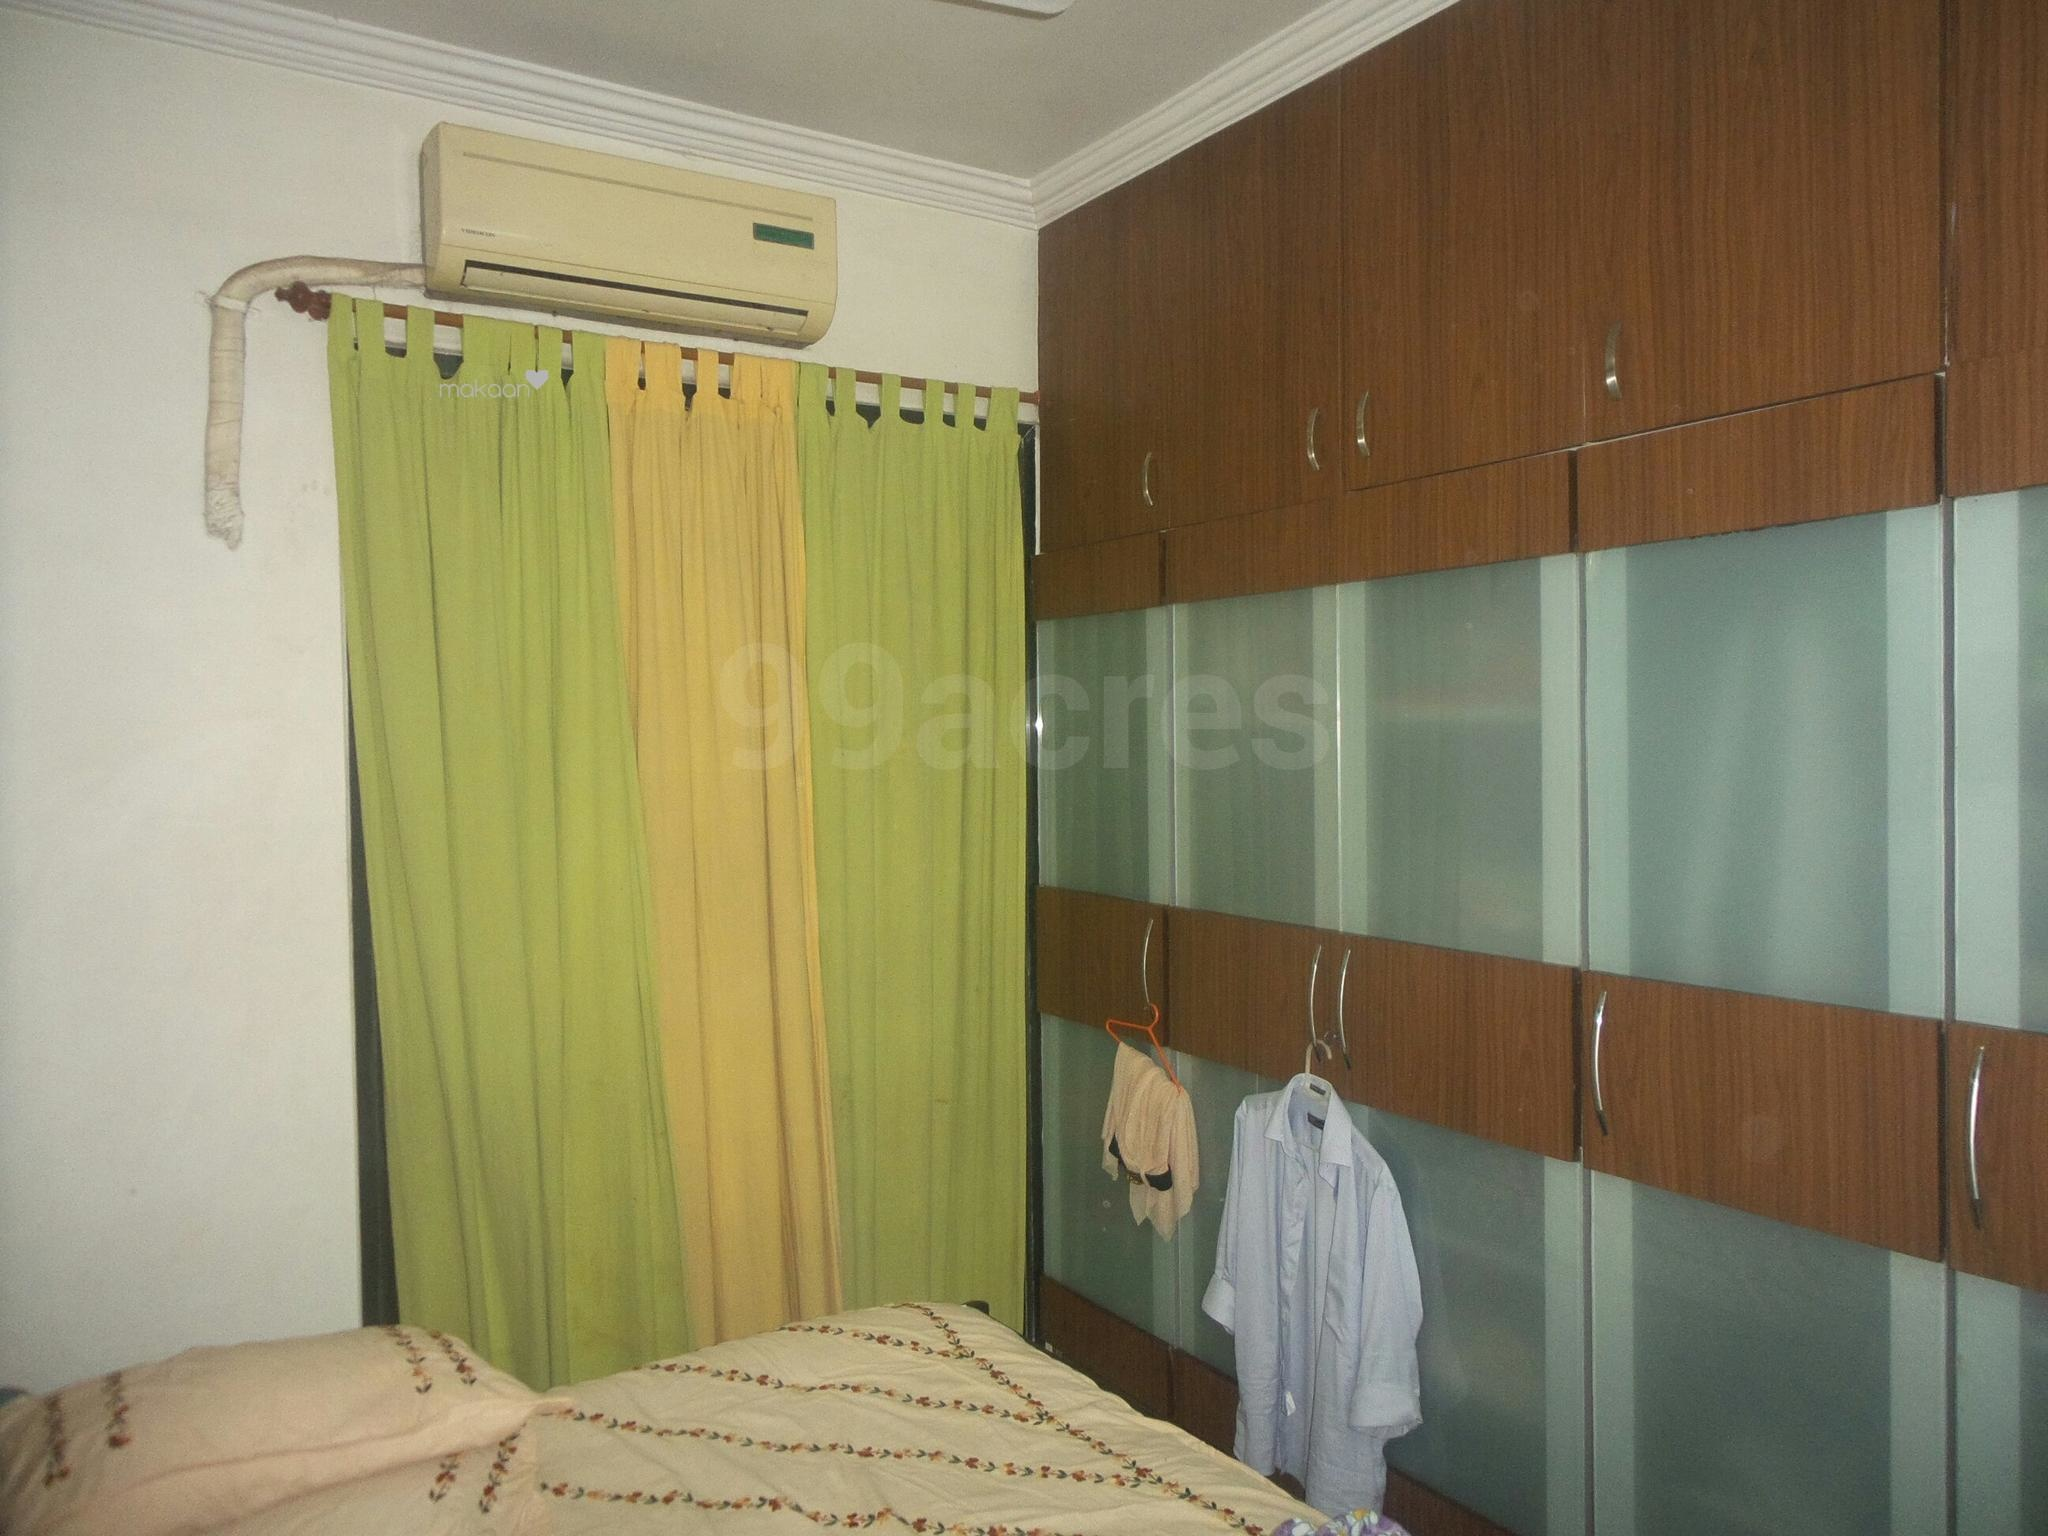 800 sq ft 2BHK 2BHK+2T (800 sq ft) Property By Shree Real Estate In Project, Vashi